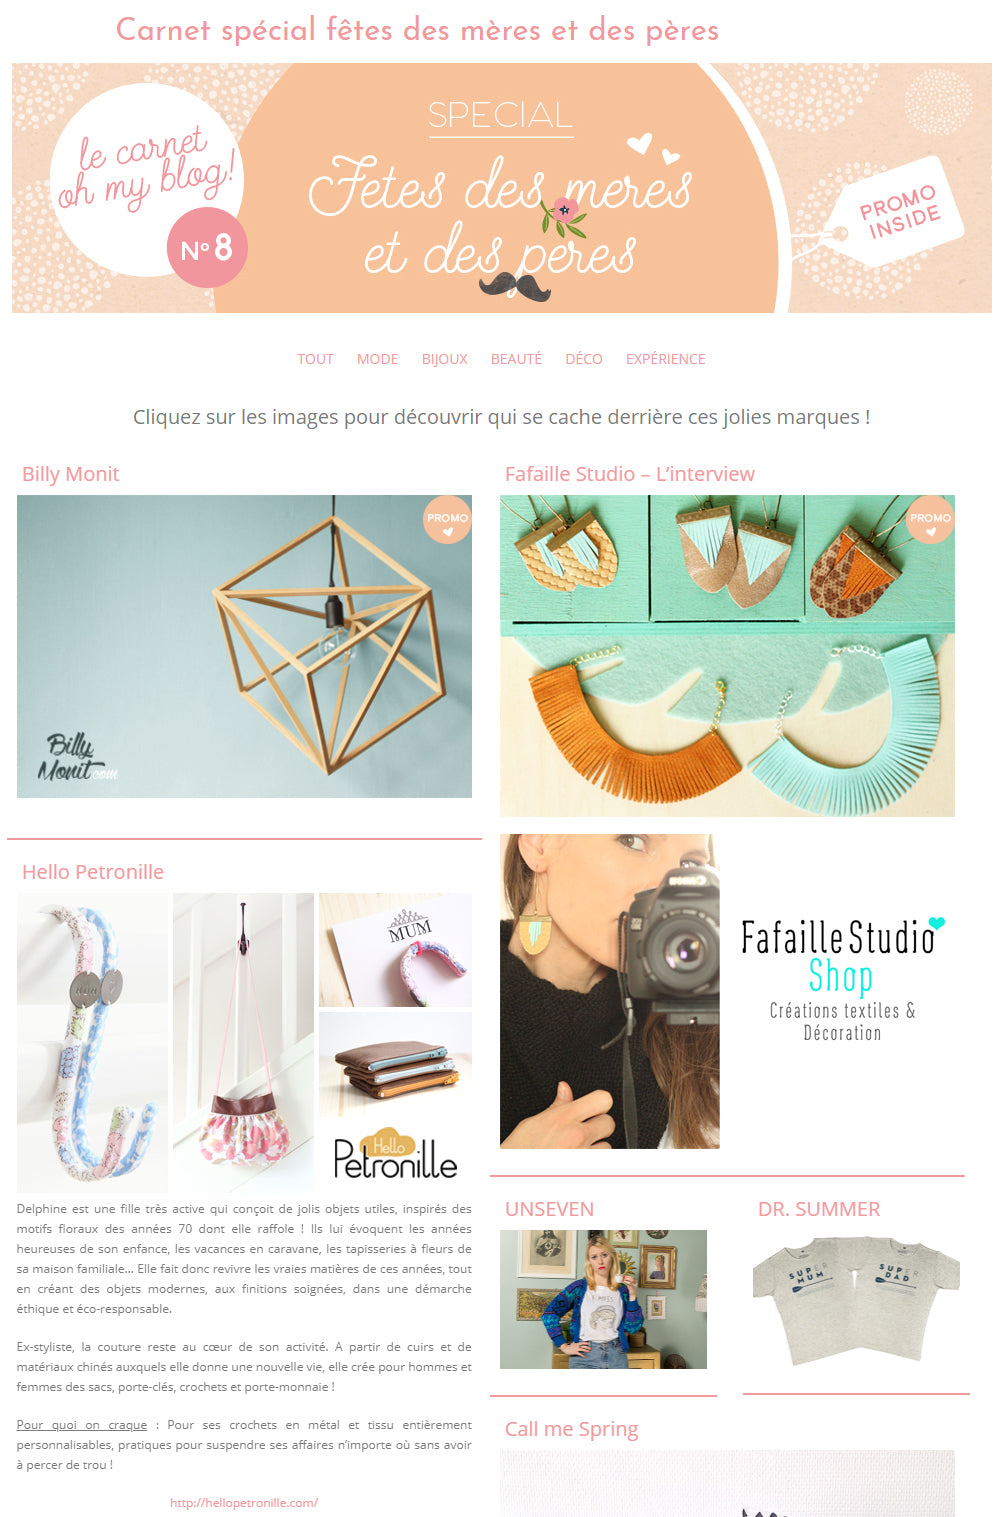 guide oh my blog fete meres peres